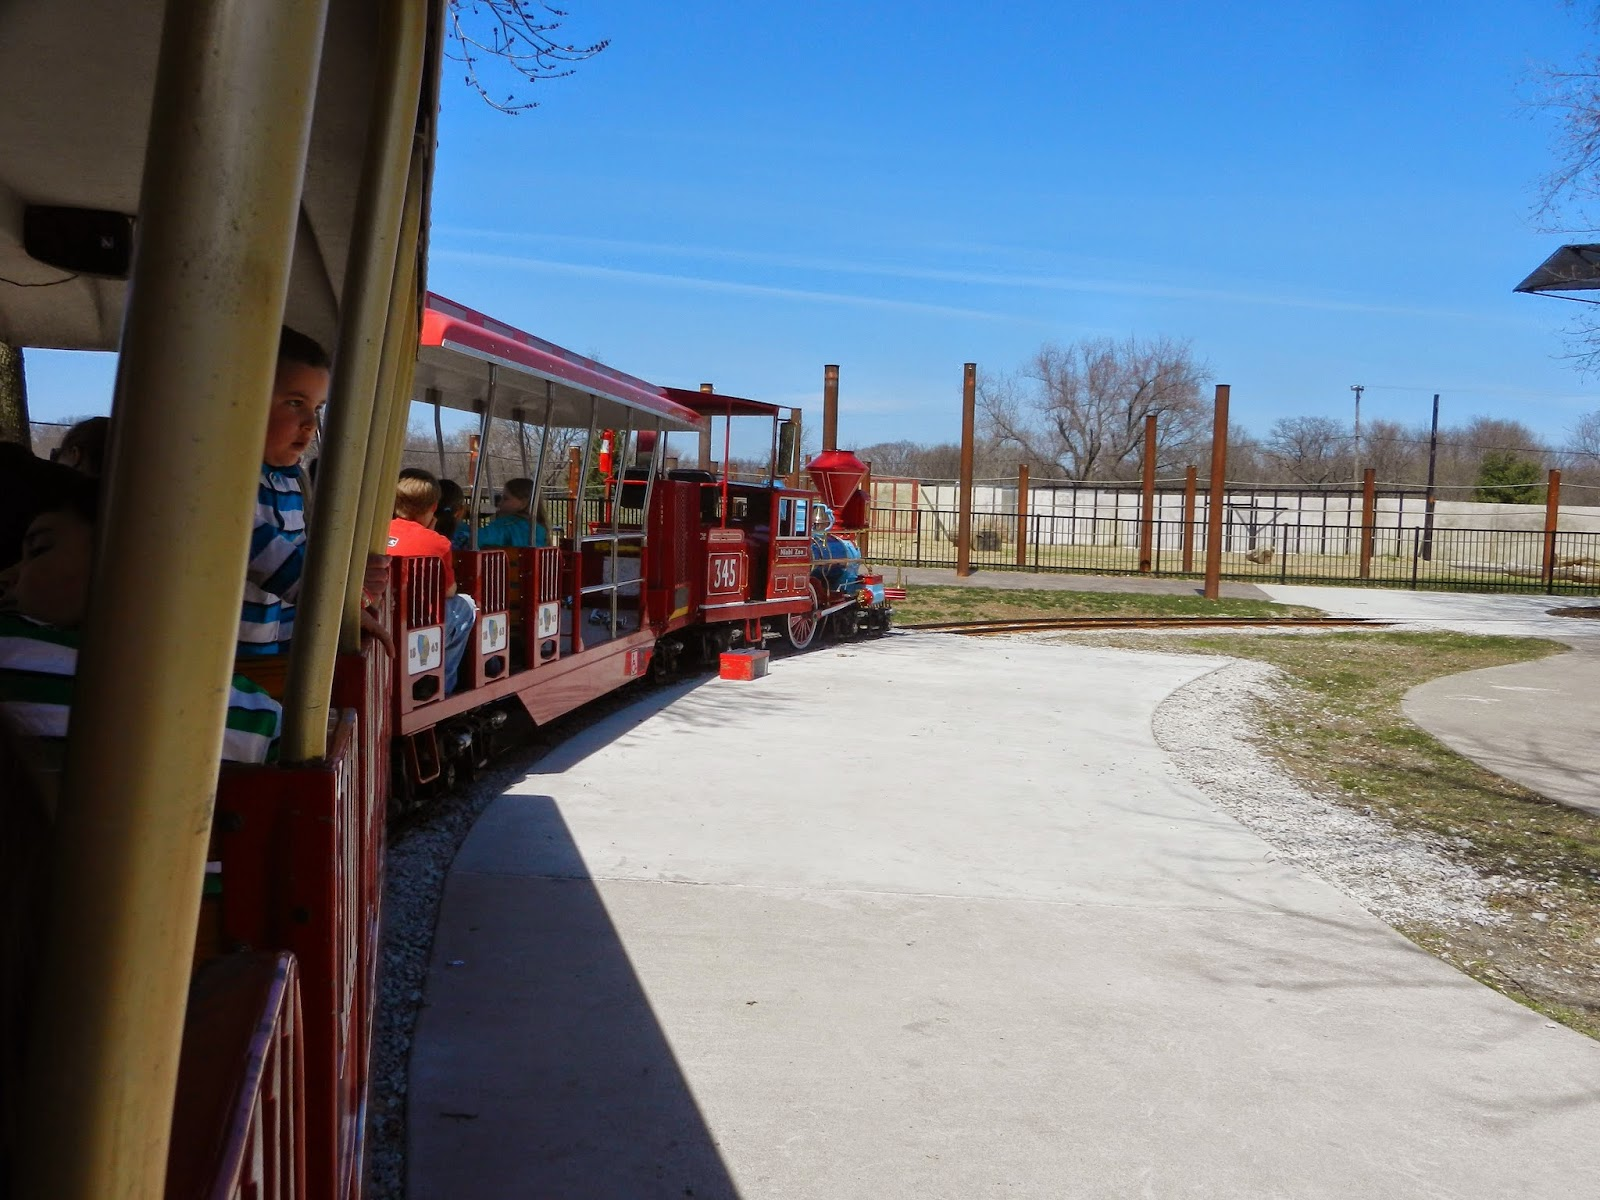 Niabi Zoo train